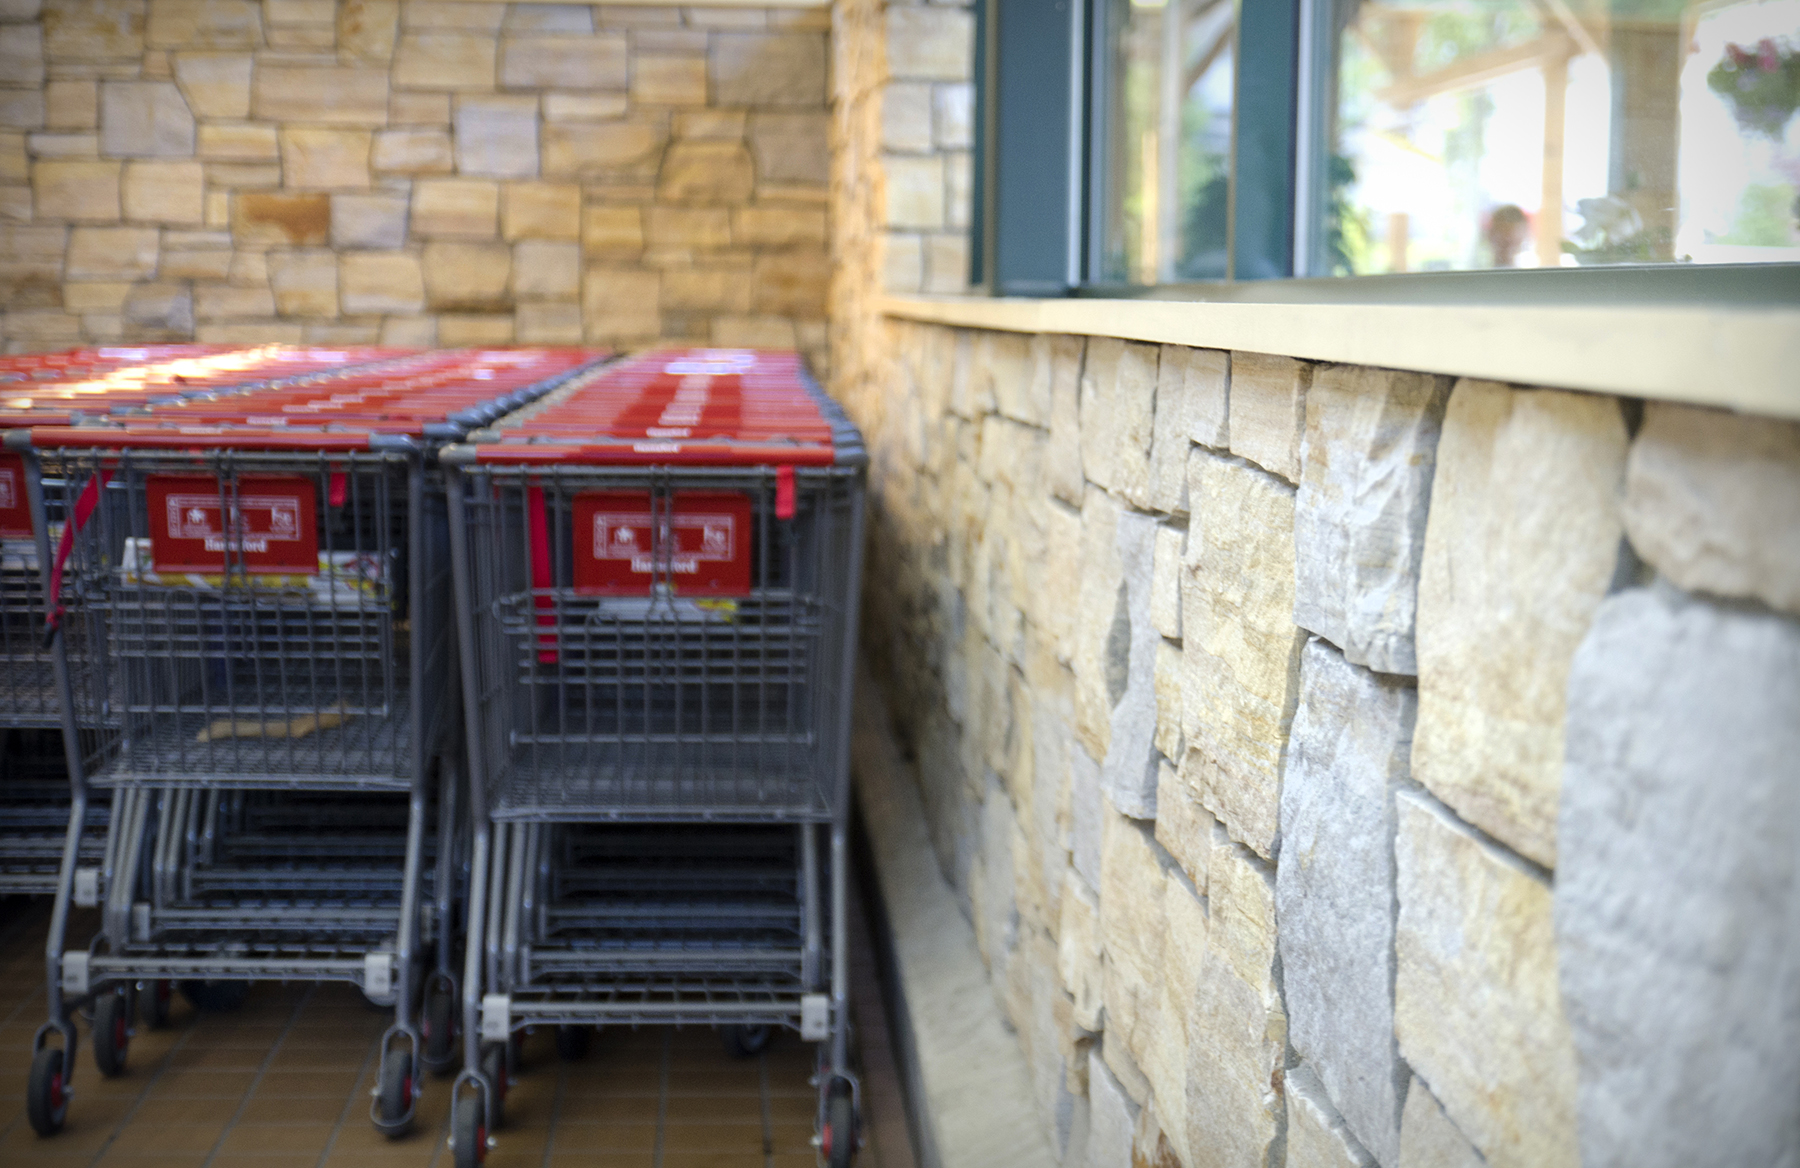 shopping carts against stone